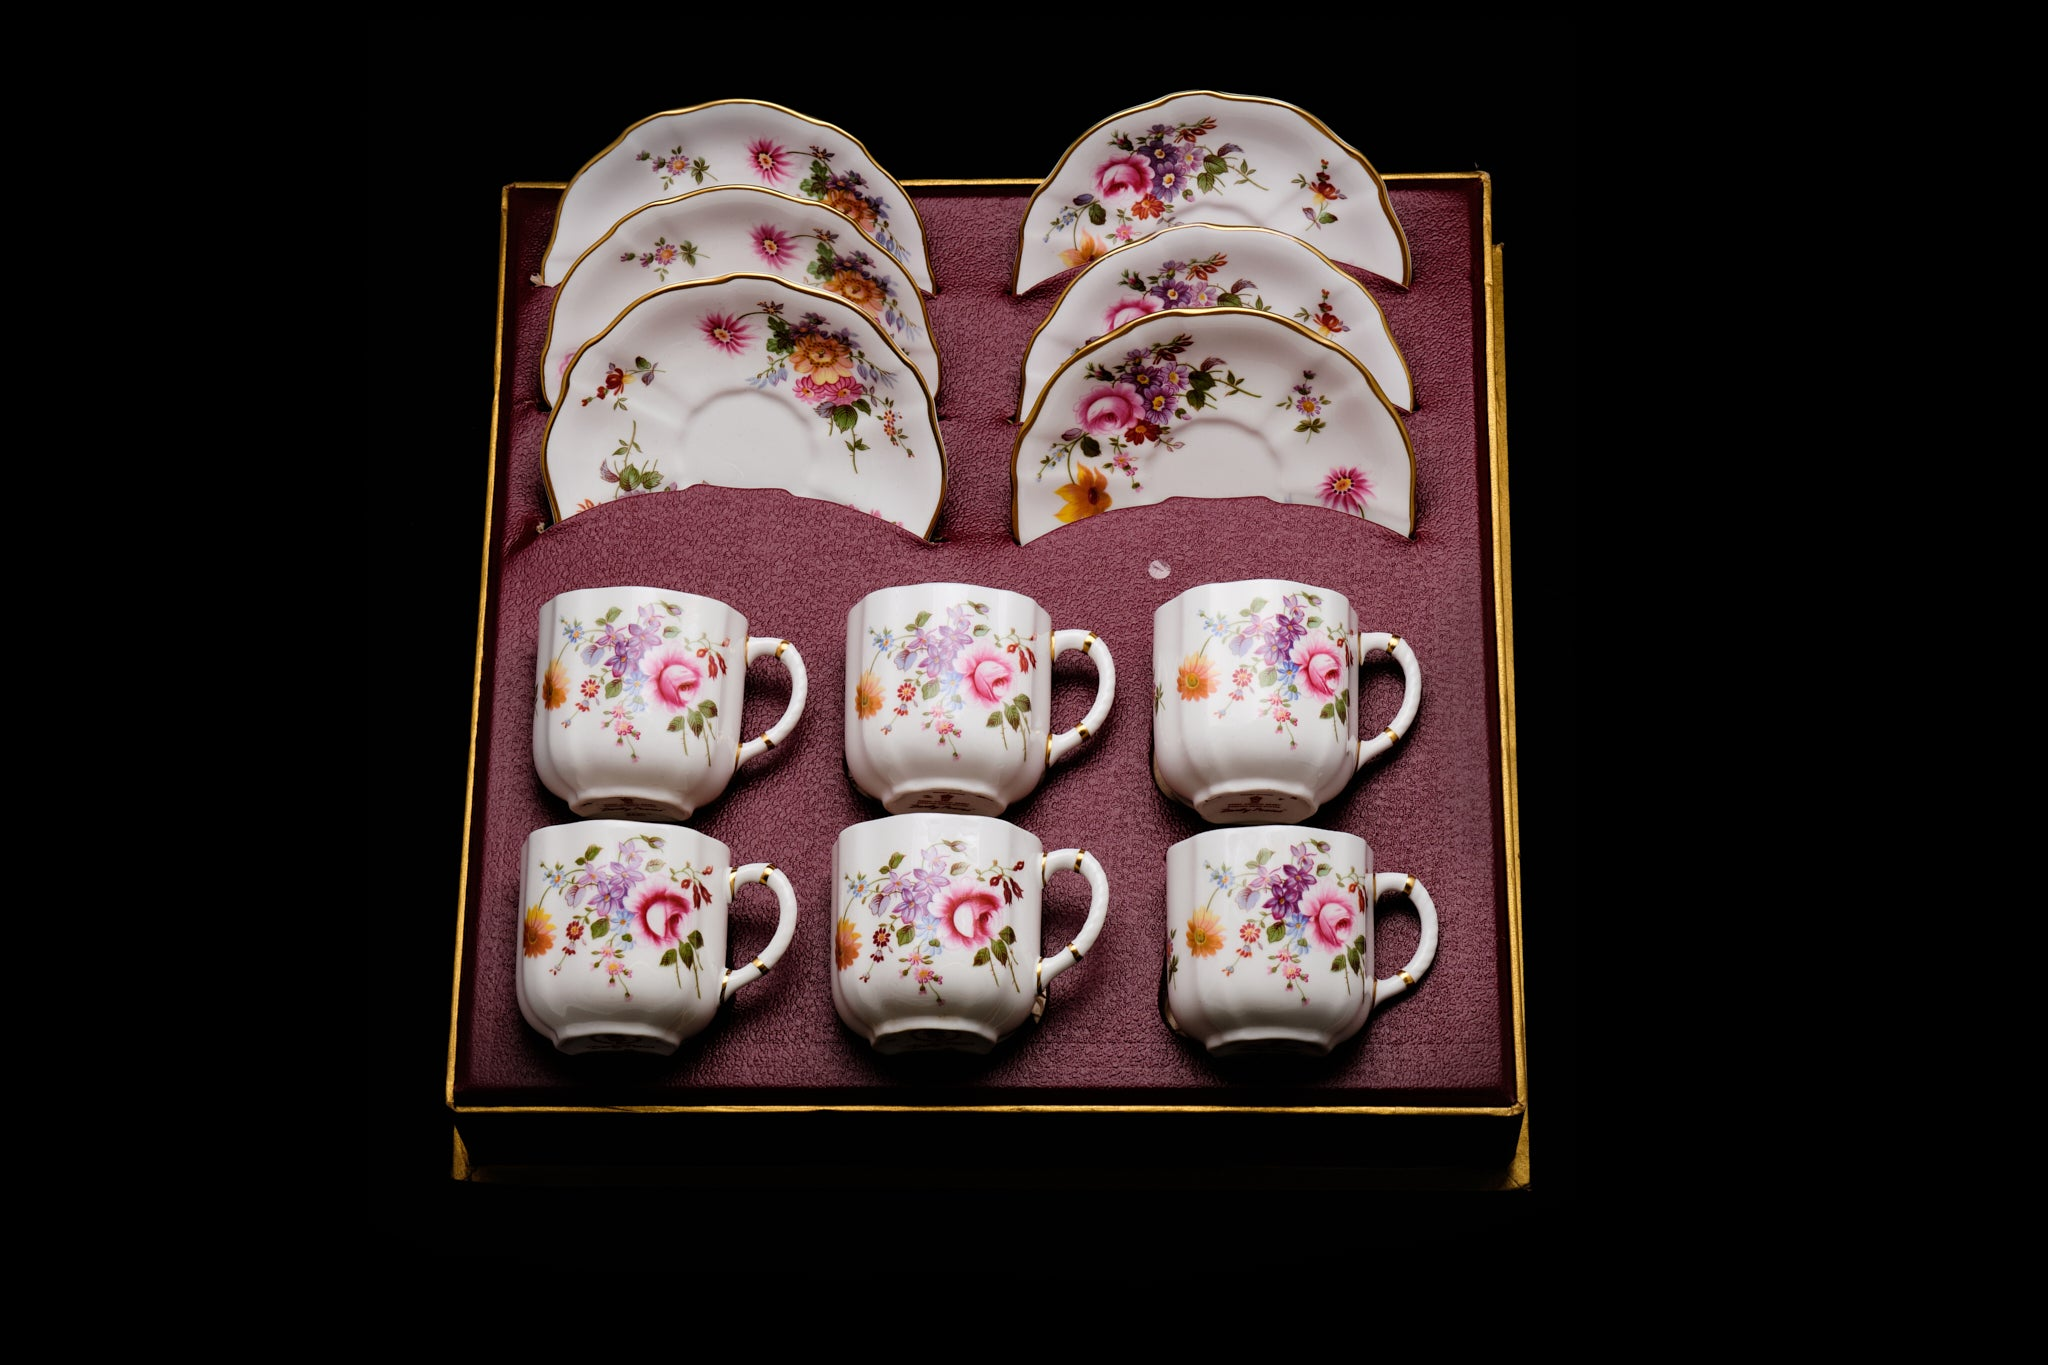 Royal Crown Derby Demi-Tasse Coffee Set.